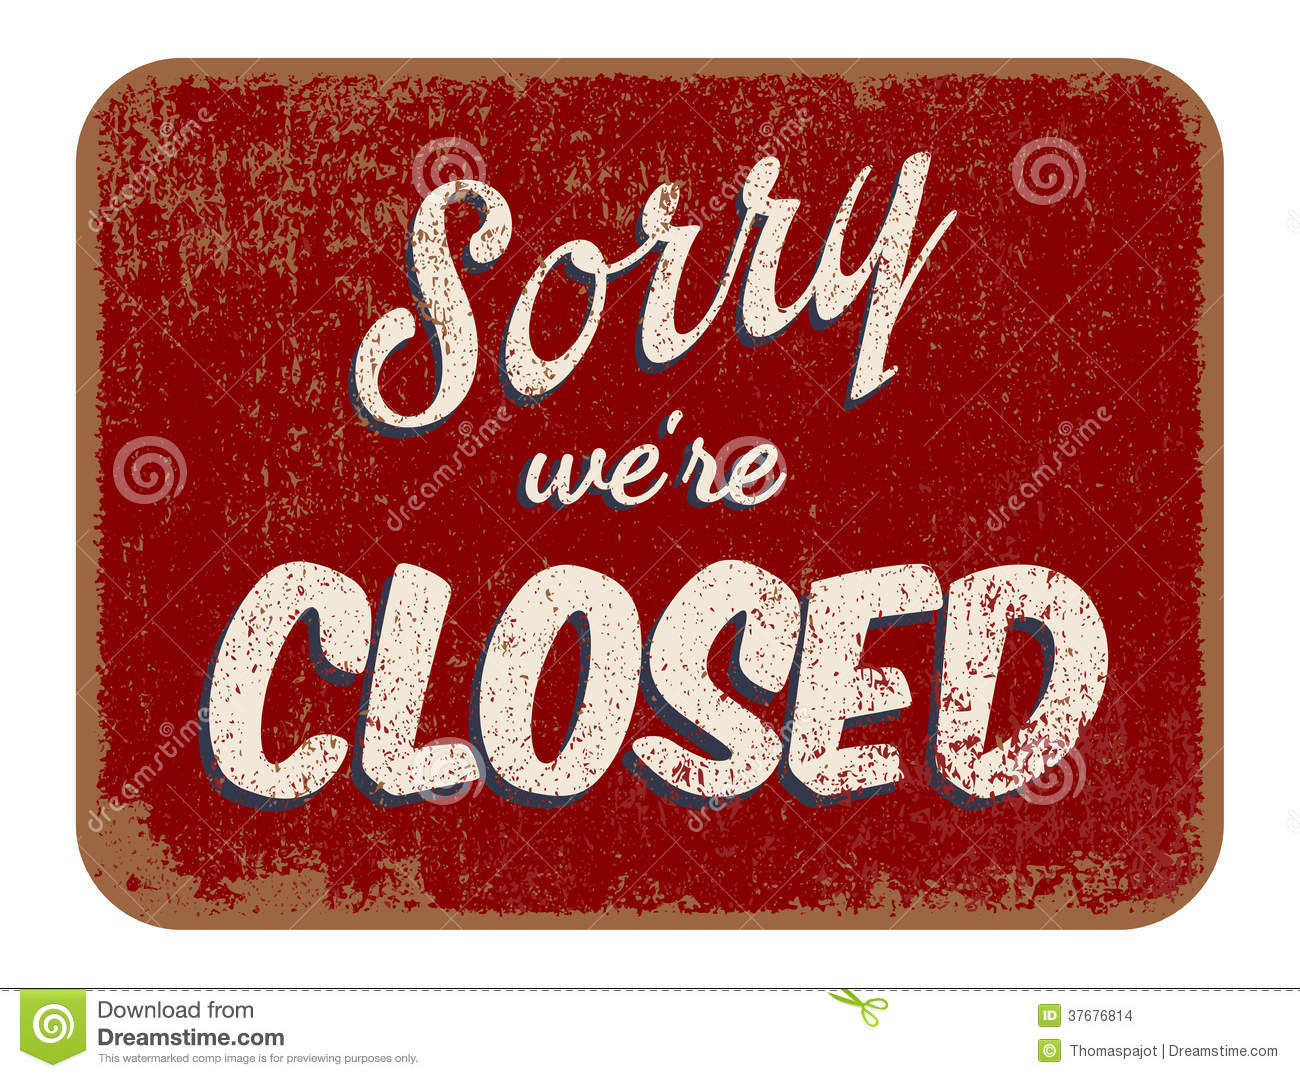 Vector illustration of vintage Sorry were closed sign.